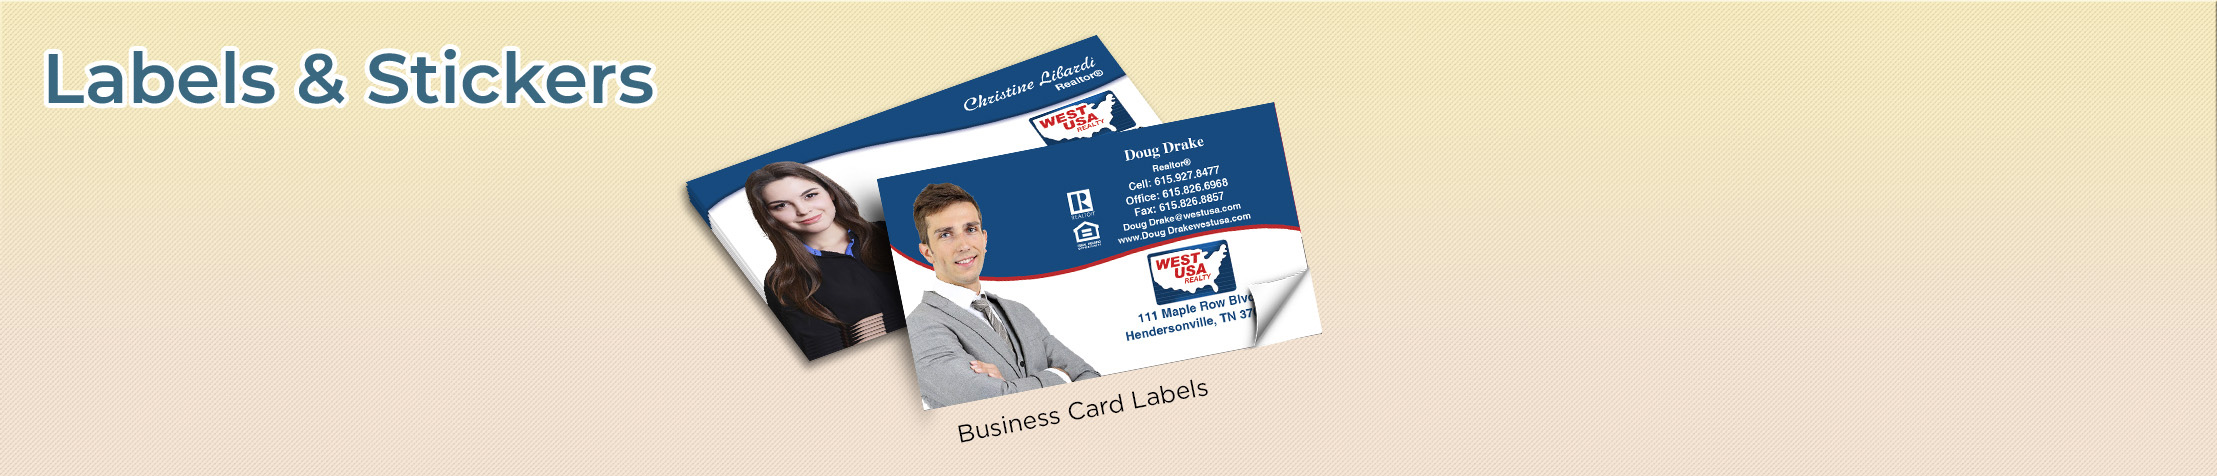 West USA Realty Real Estate Labels and Stickers - West USA Realty  business card labels, return address labels, shipping labels, and assorted stickers | BestPrintBuy.com